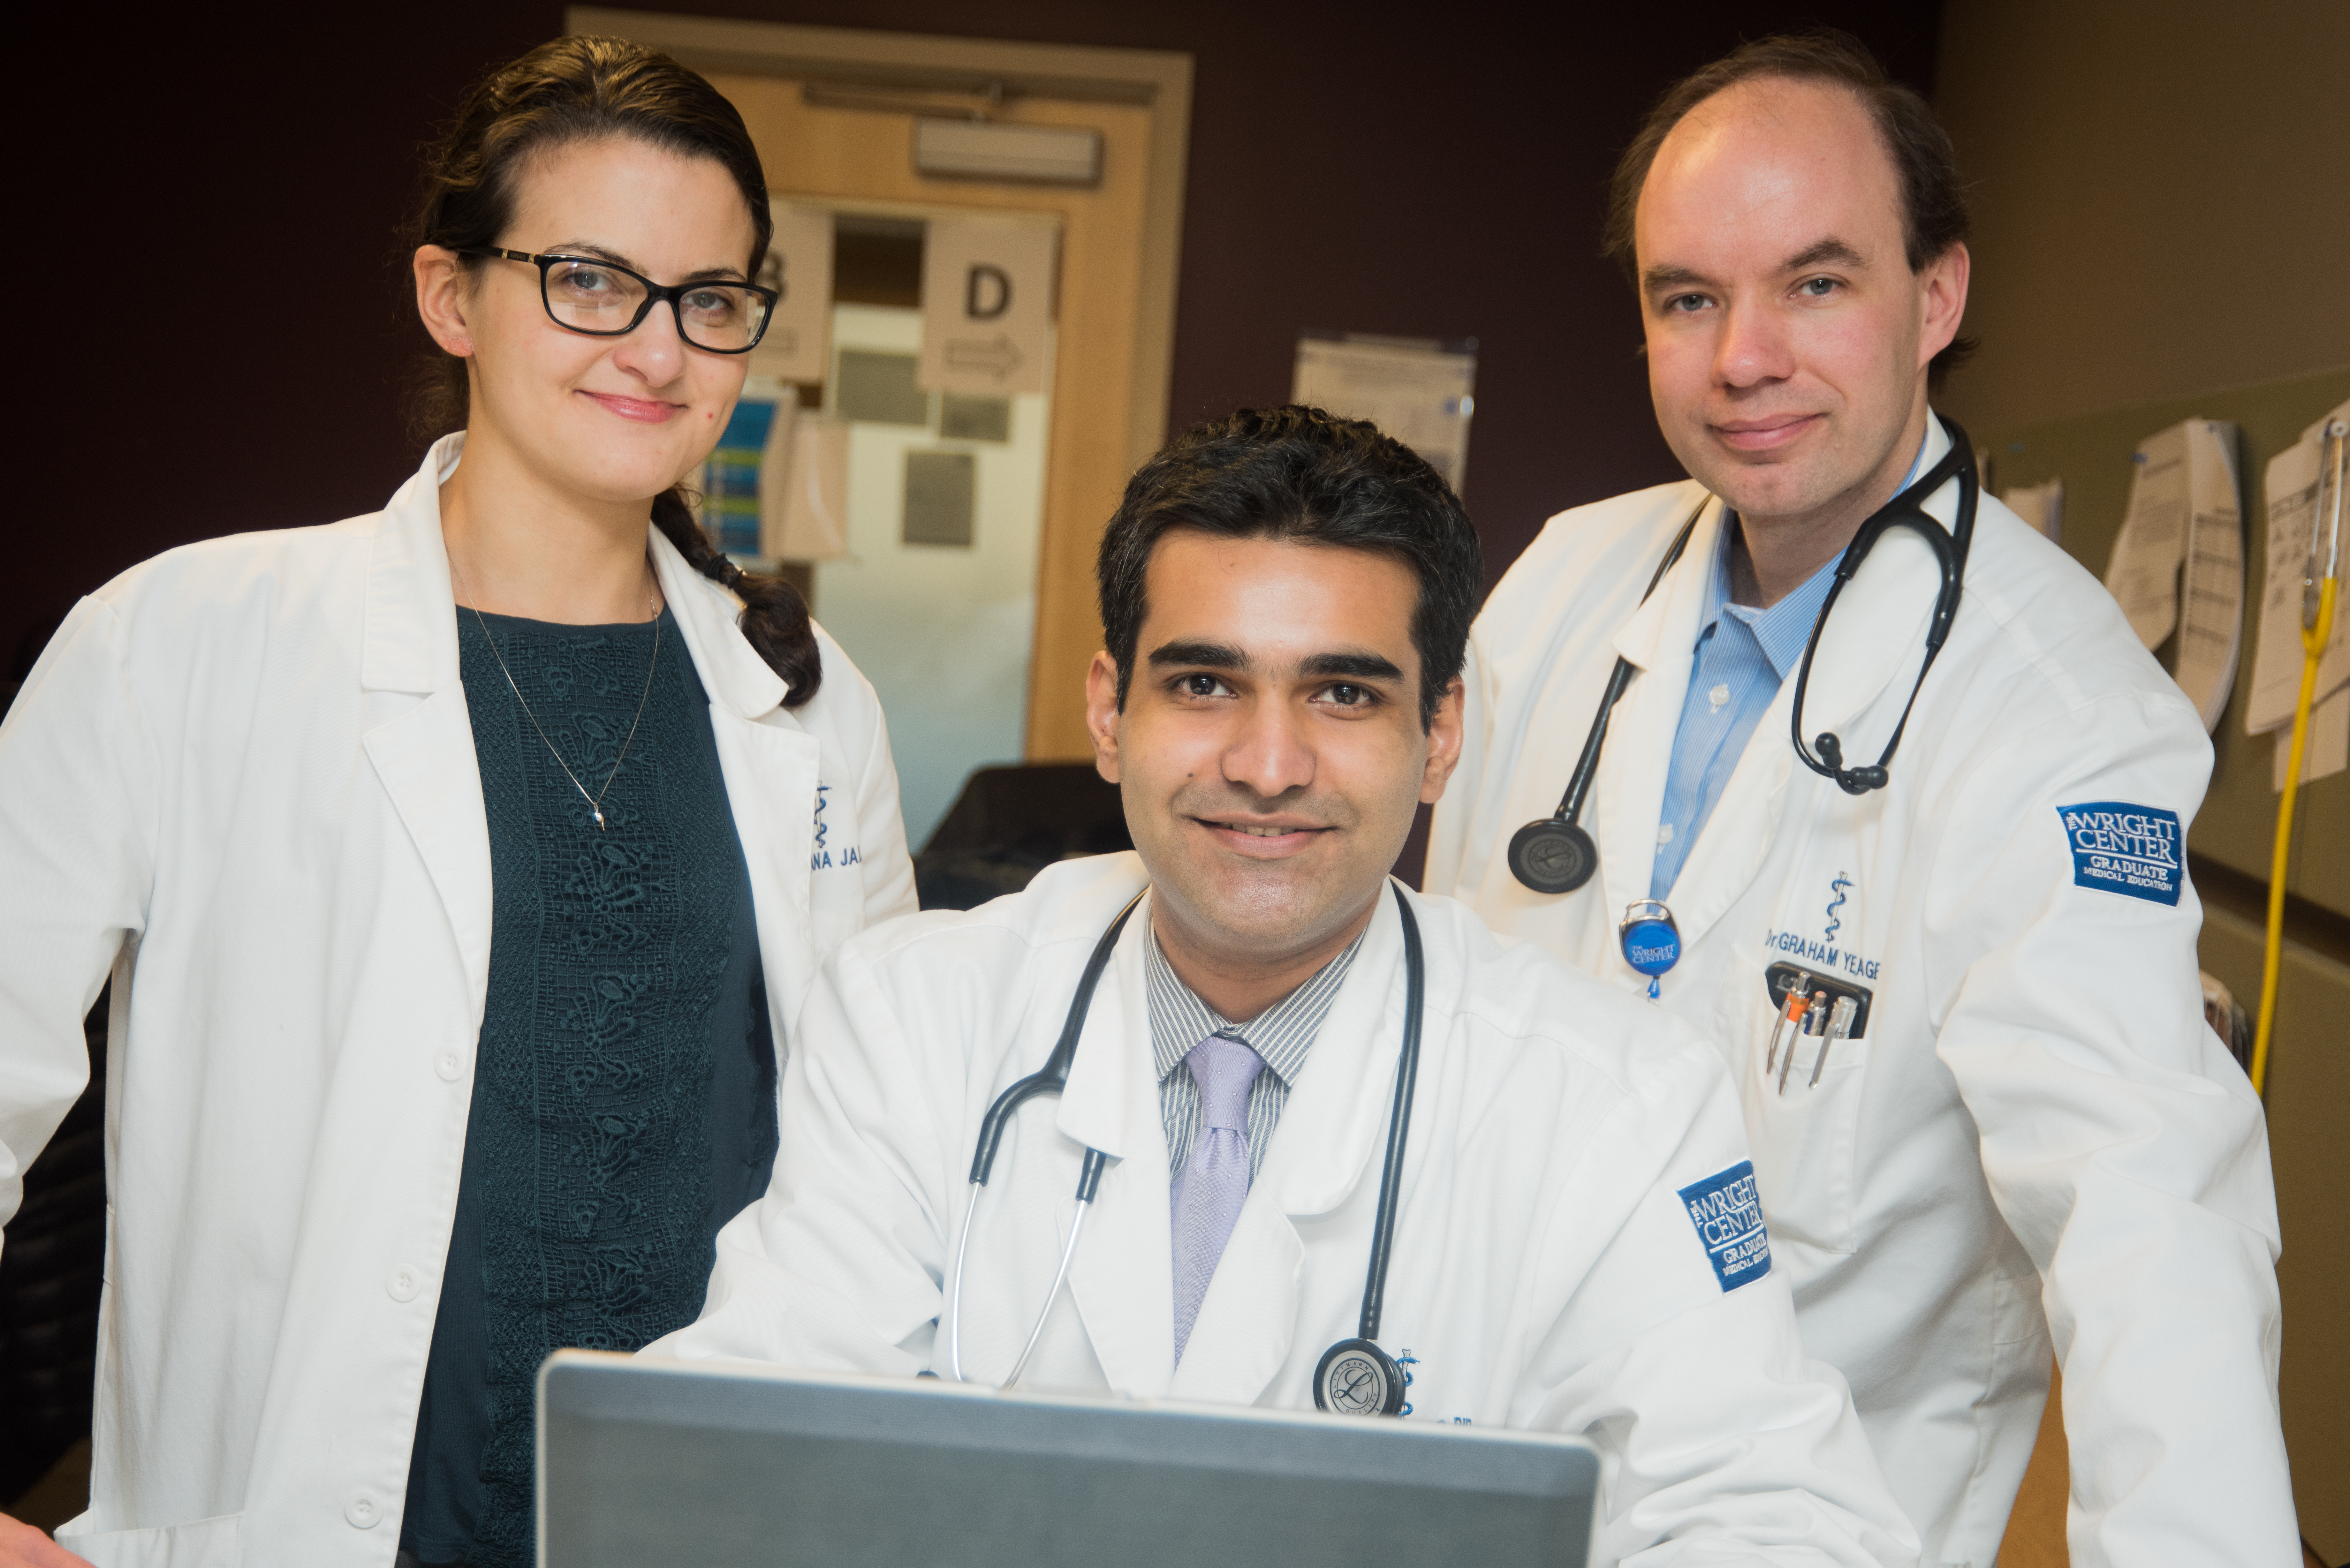 Doctors at The Wright Center for Community Health